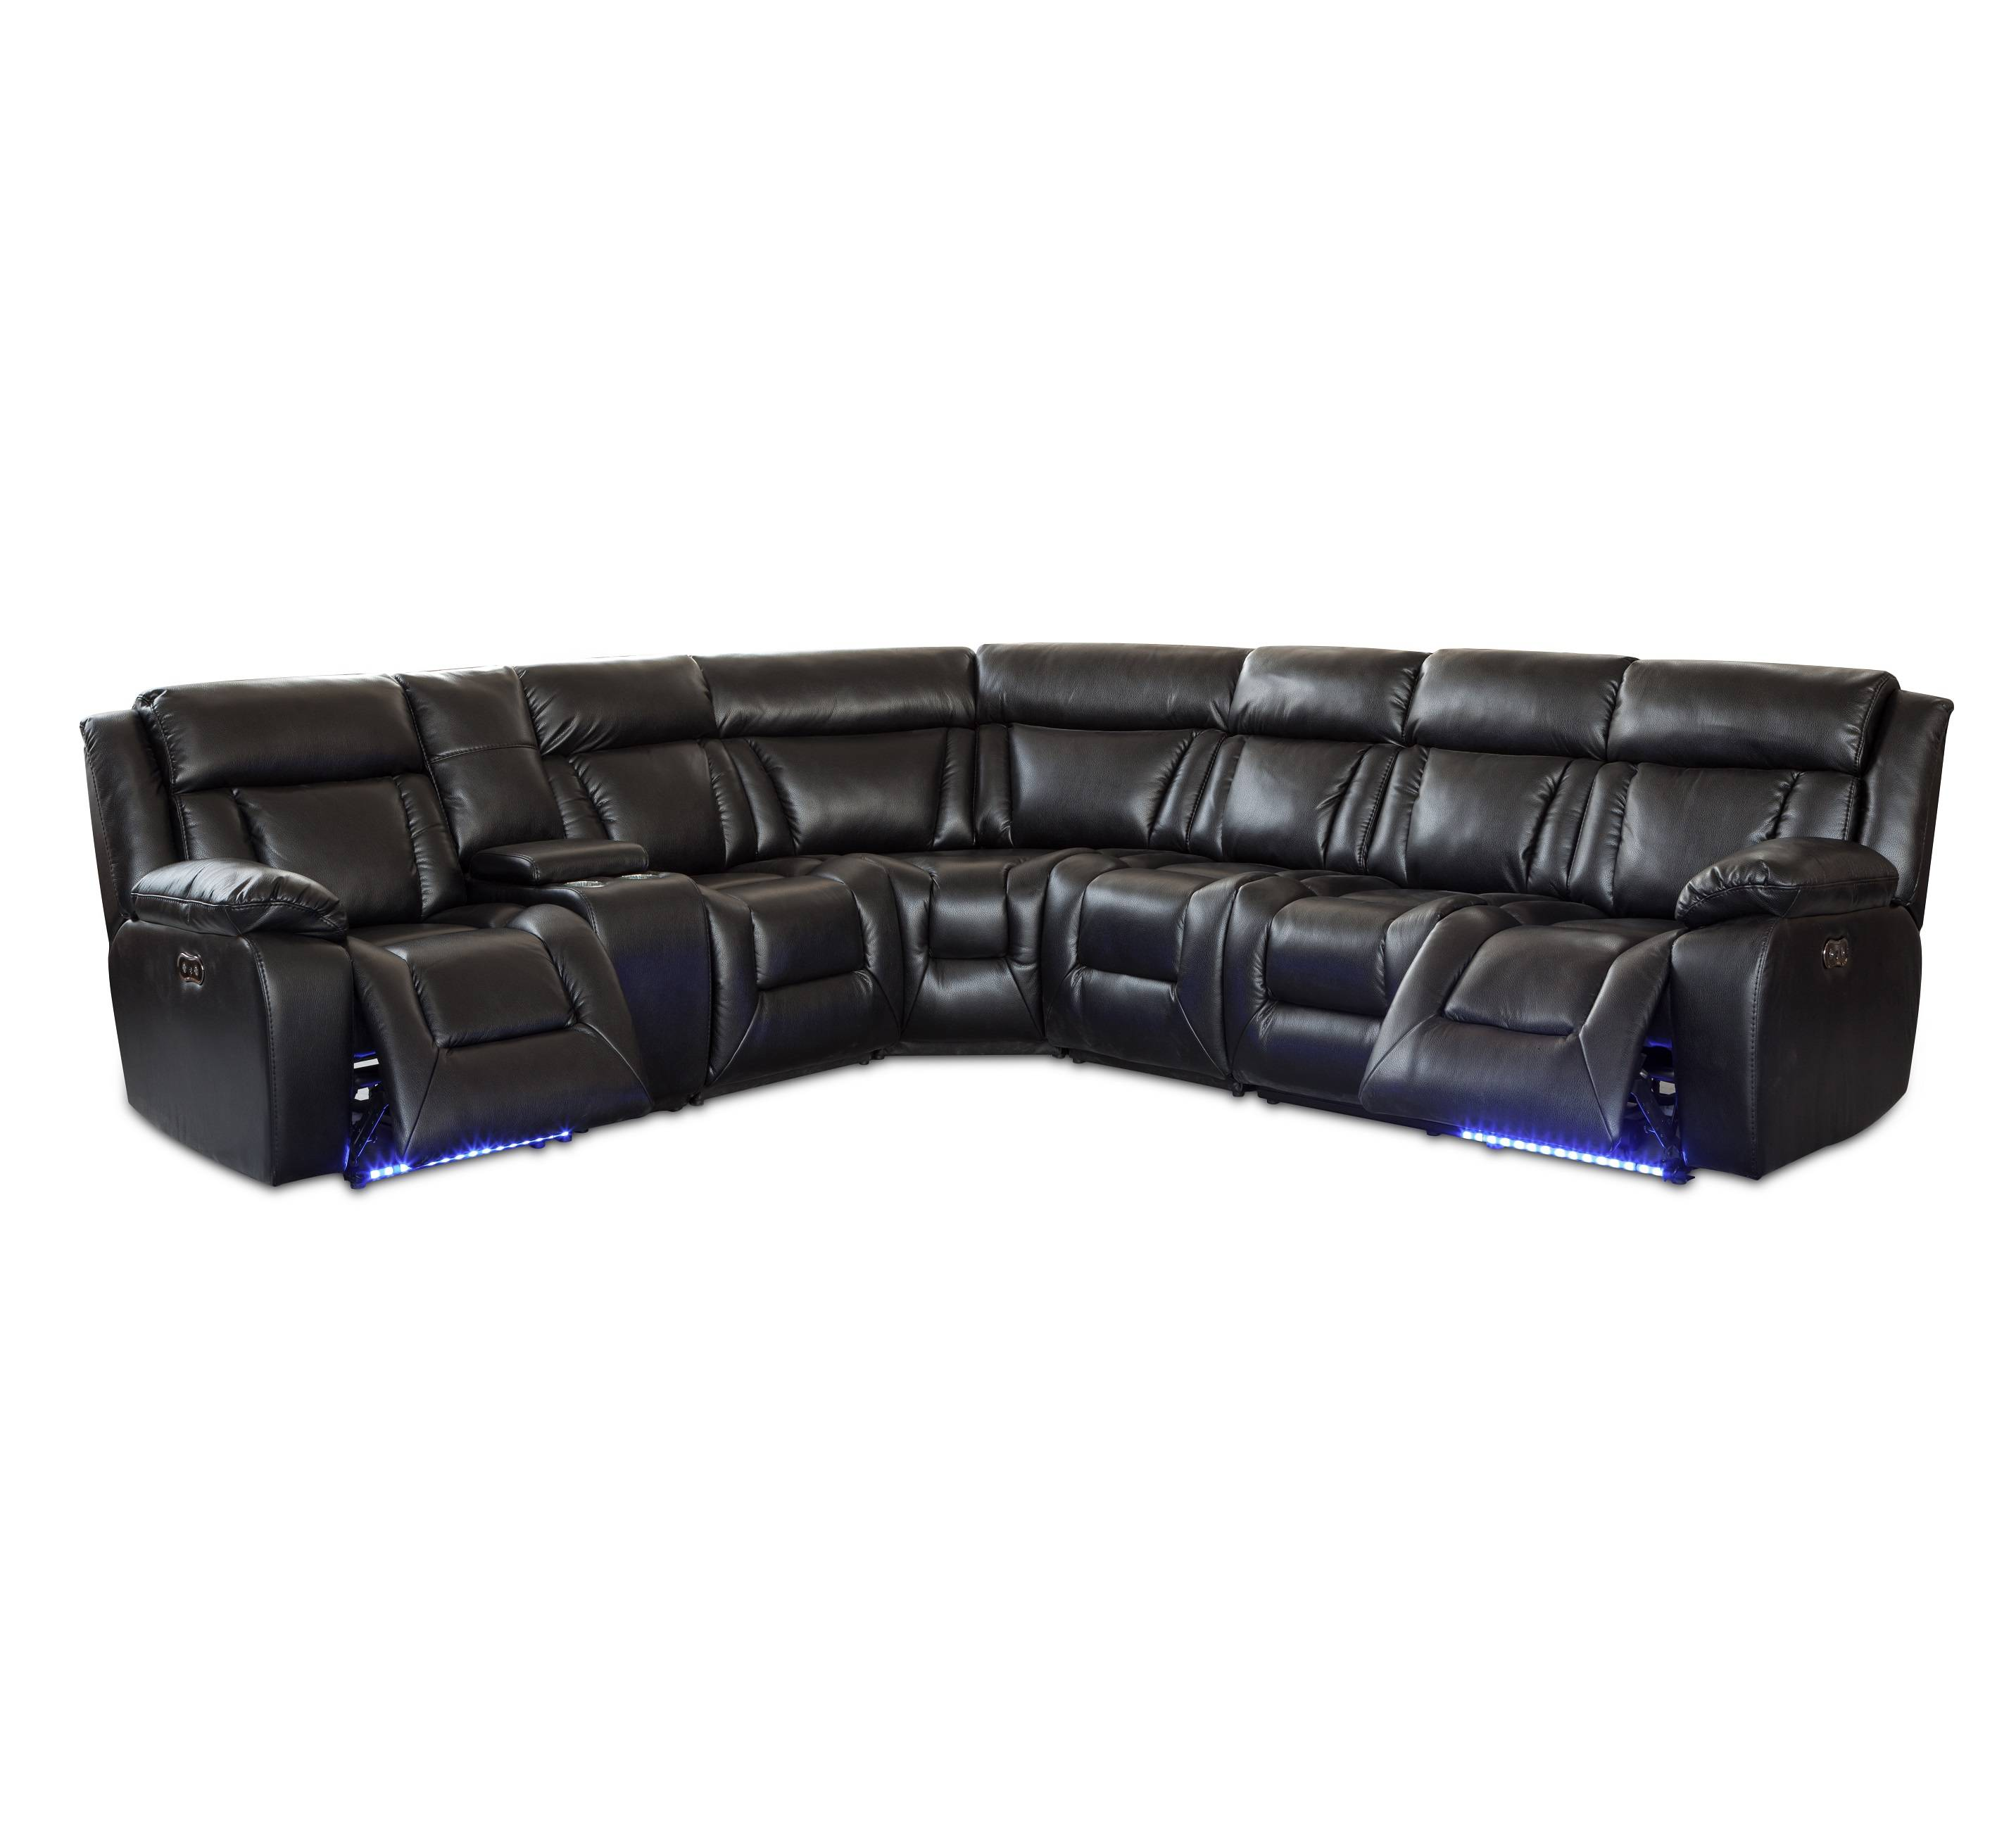 Modern leather recliner massage sectional sofa set with cup holder